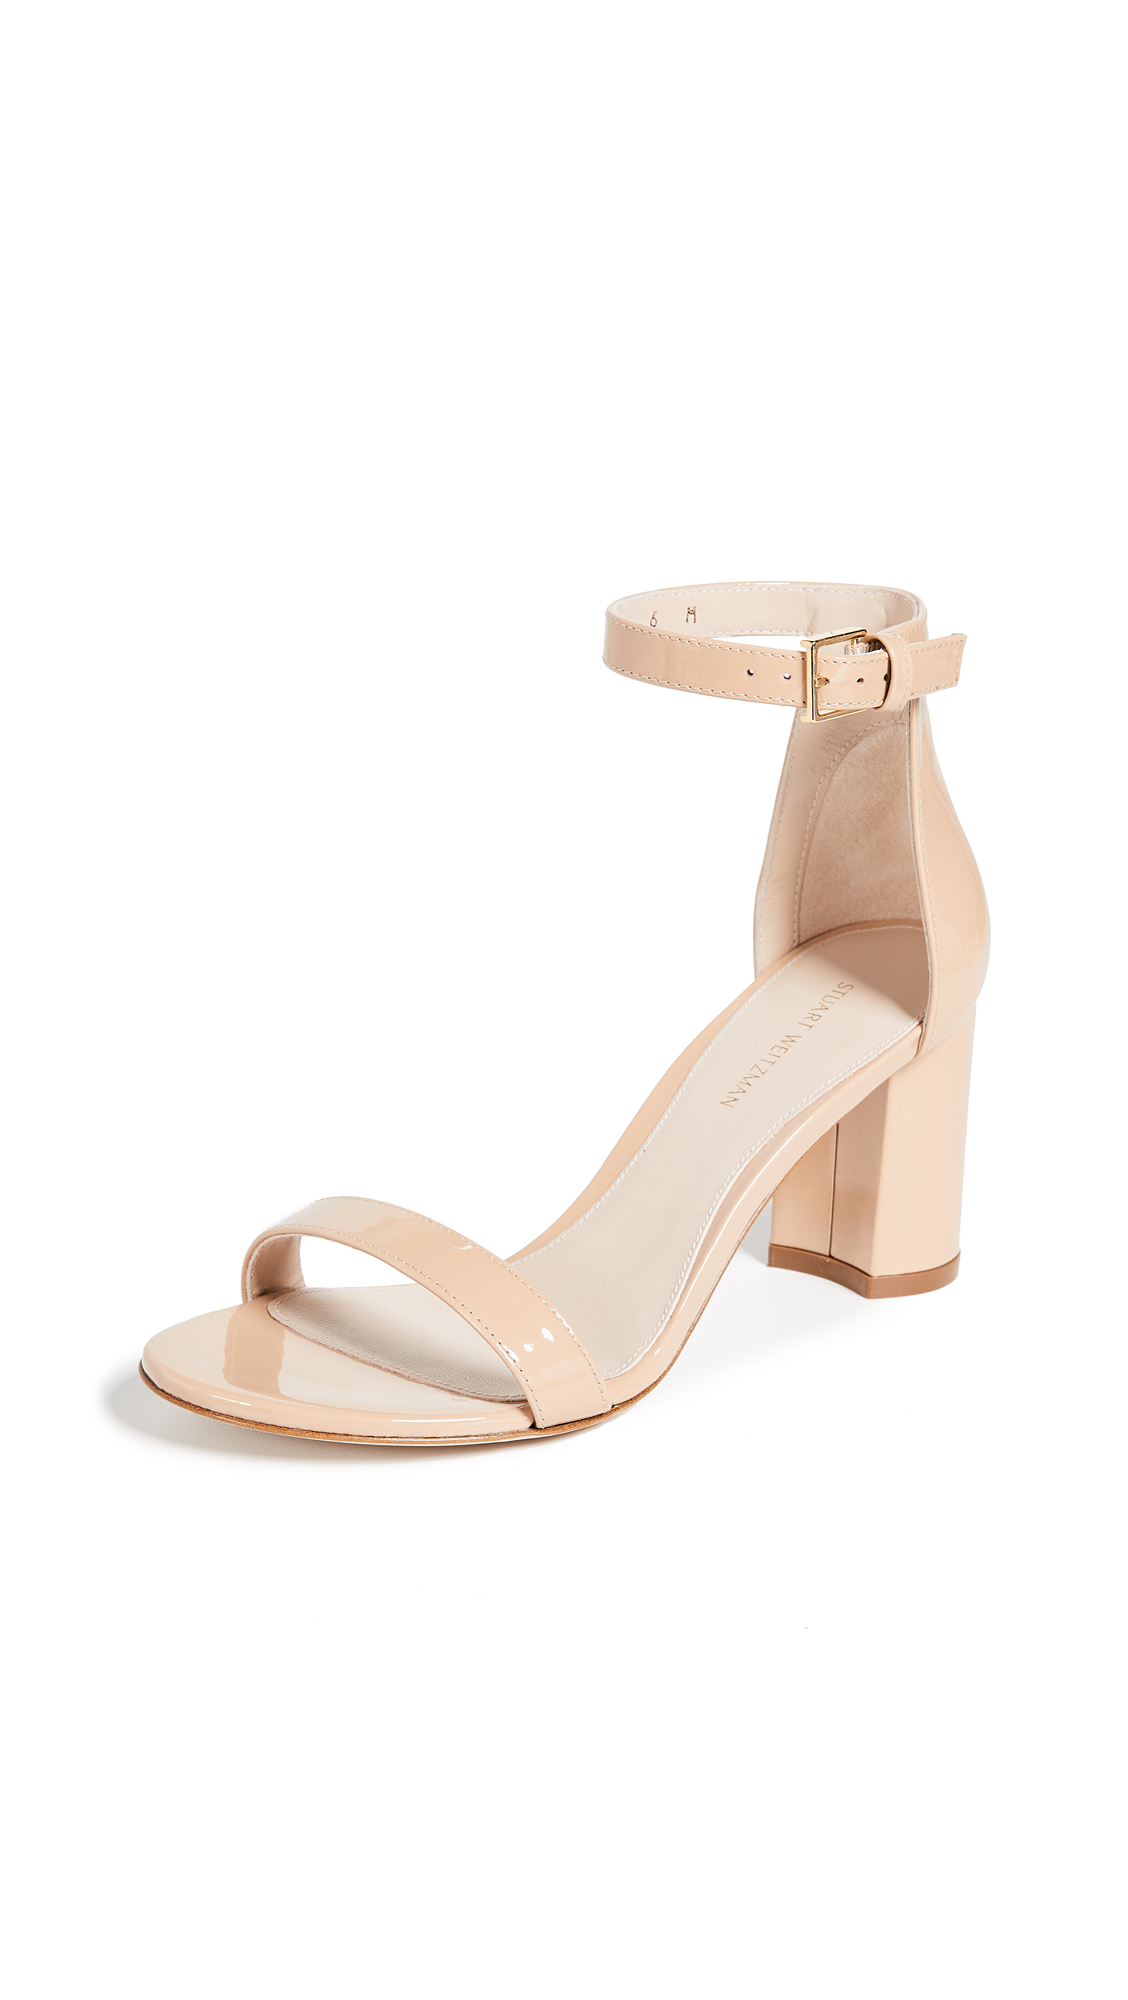 Stuart Weitzman 75mm Less Nudist Sandals - Adobe